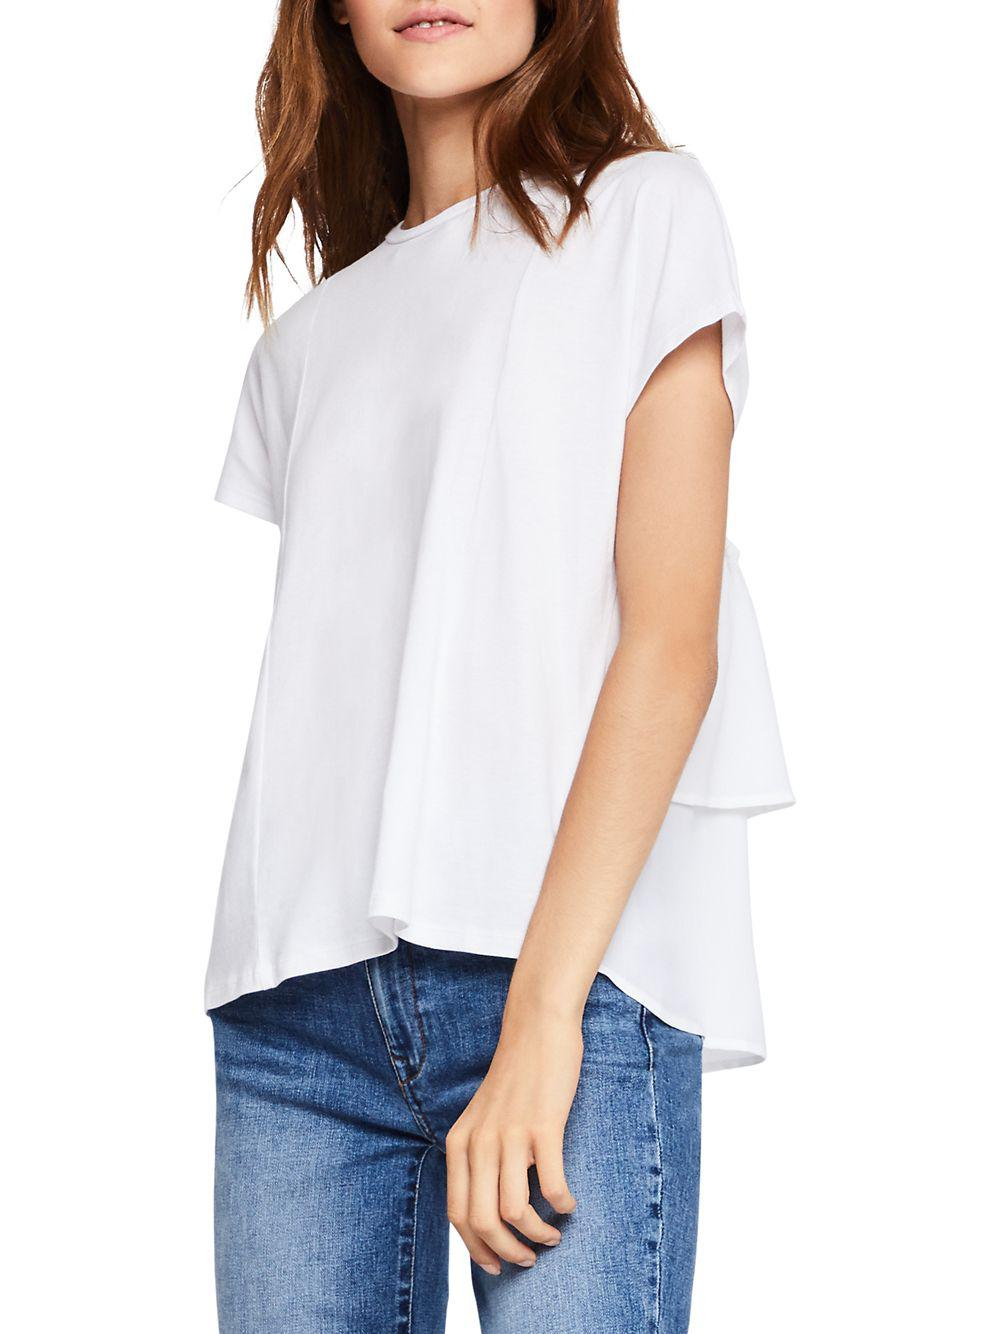 b298ff32d5ee2 Lyst - Bcbgeneration Tiered Ruffle Back Tee in White